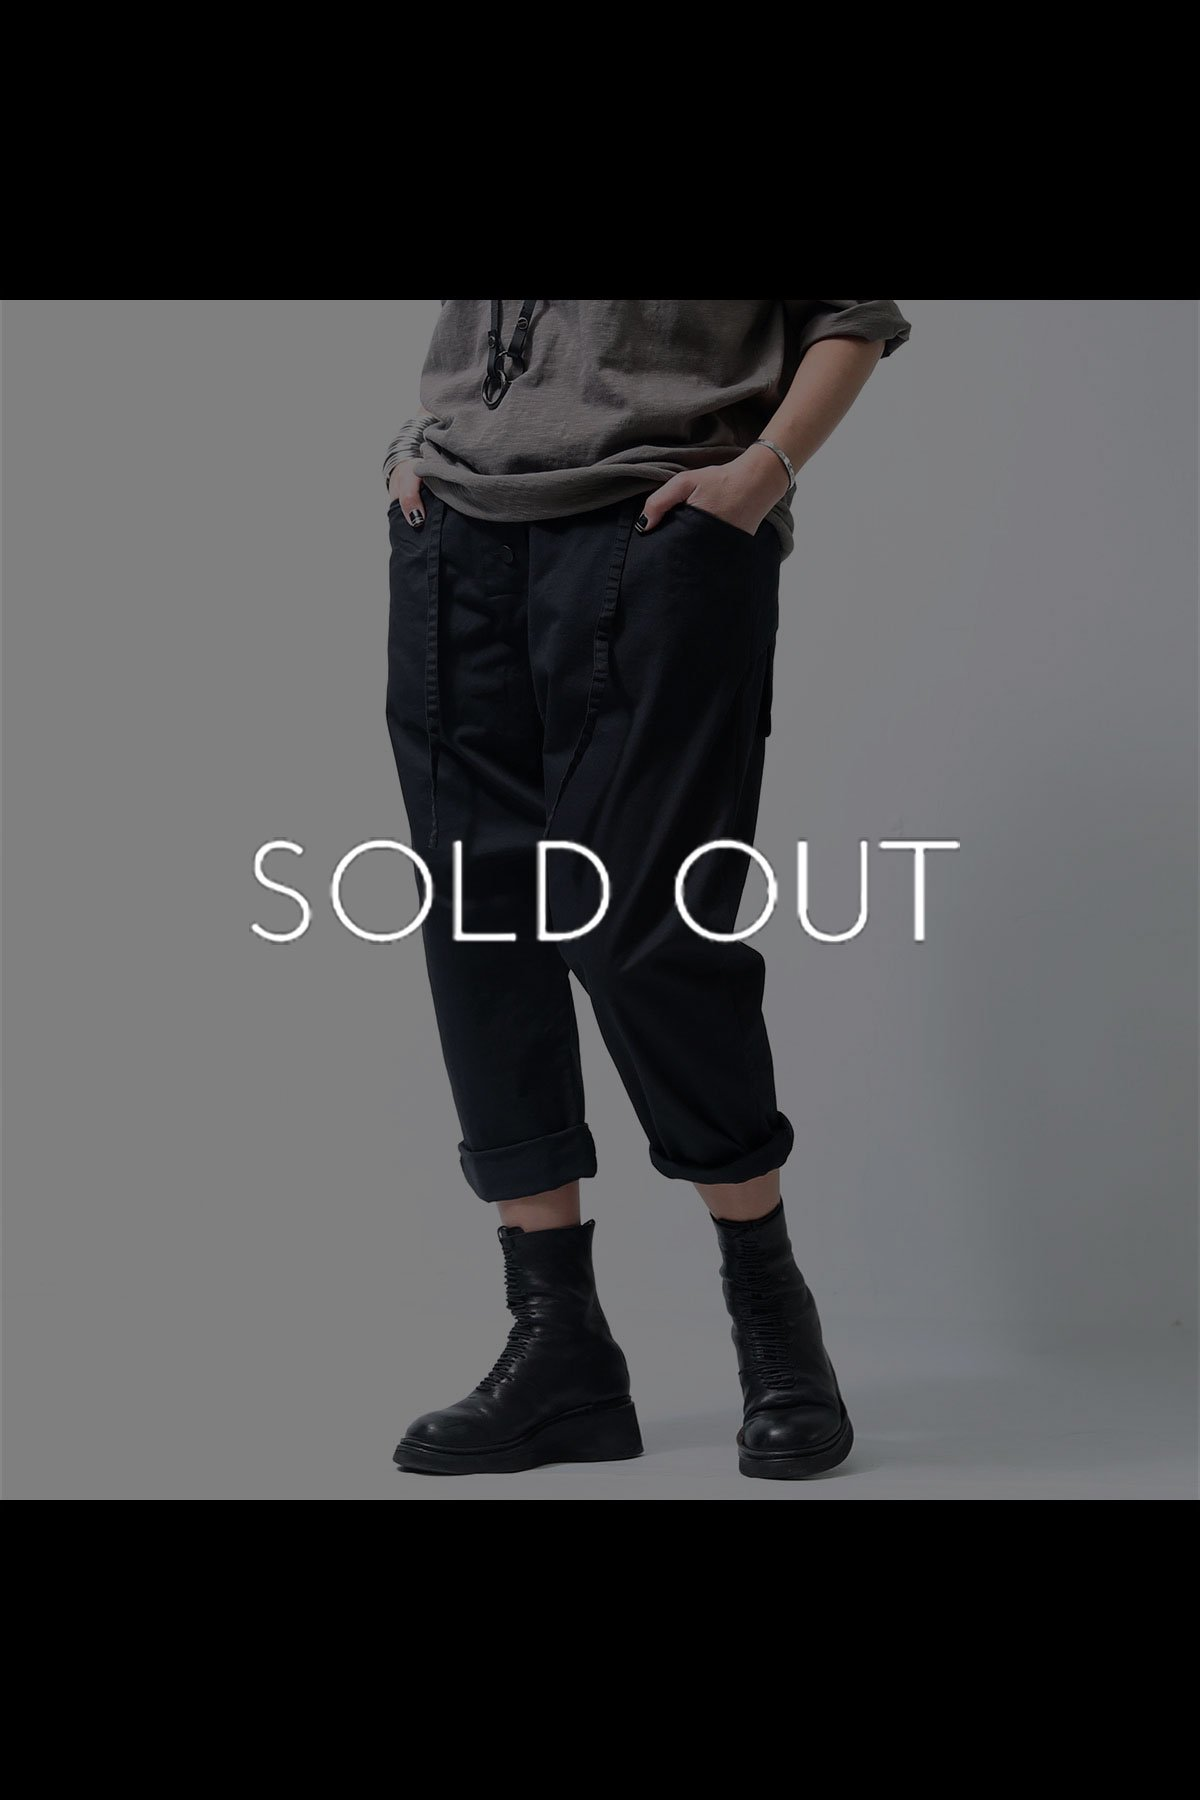 studio b3